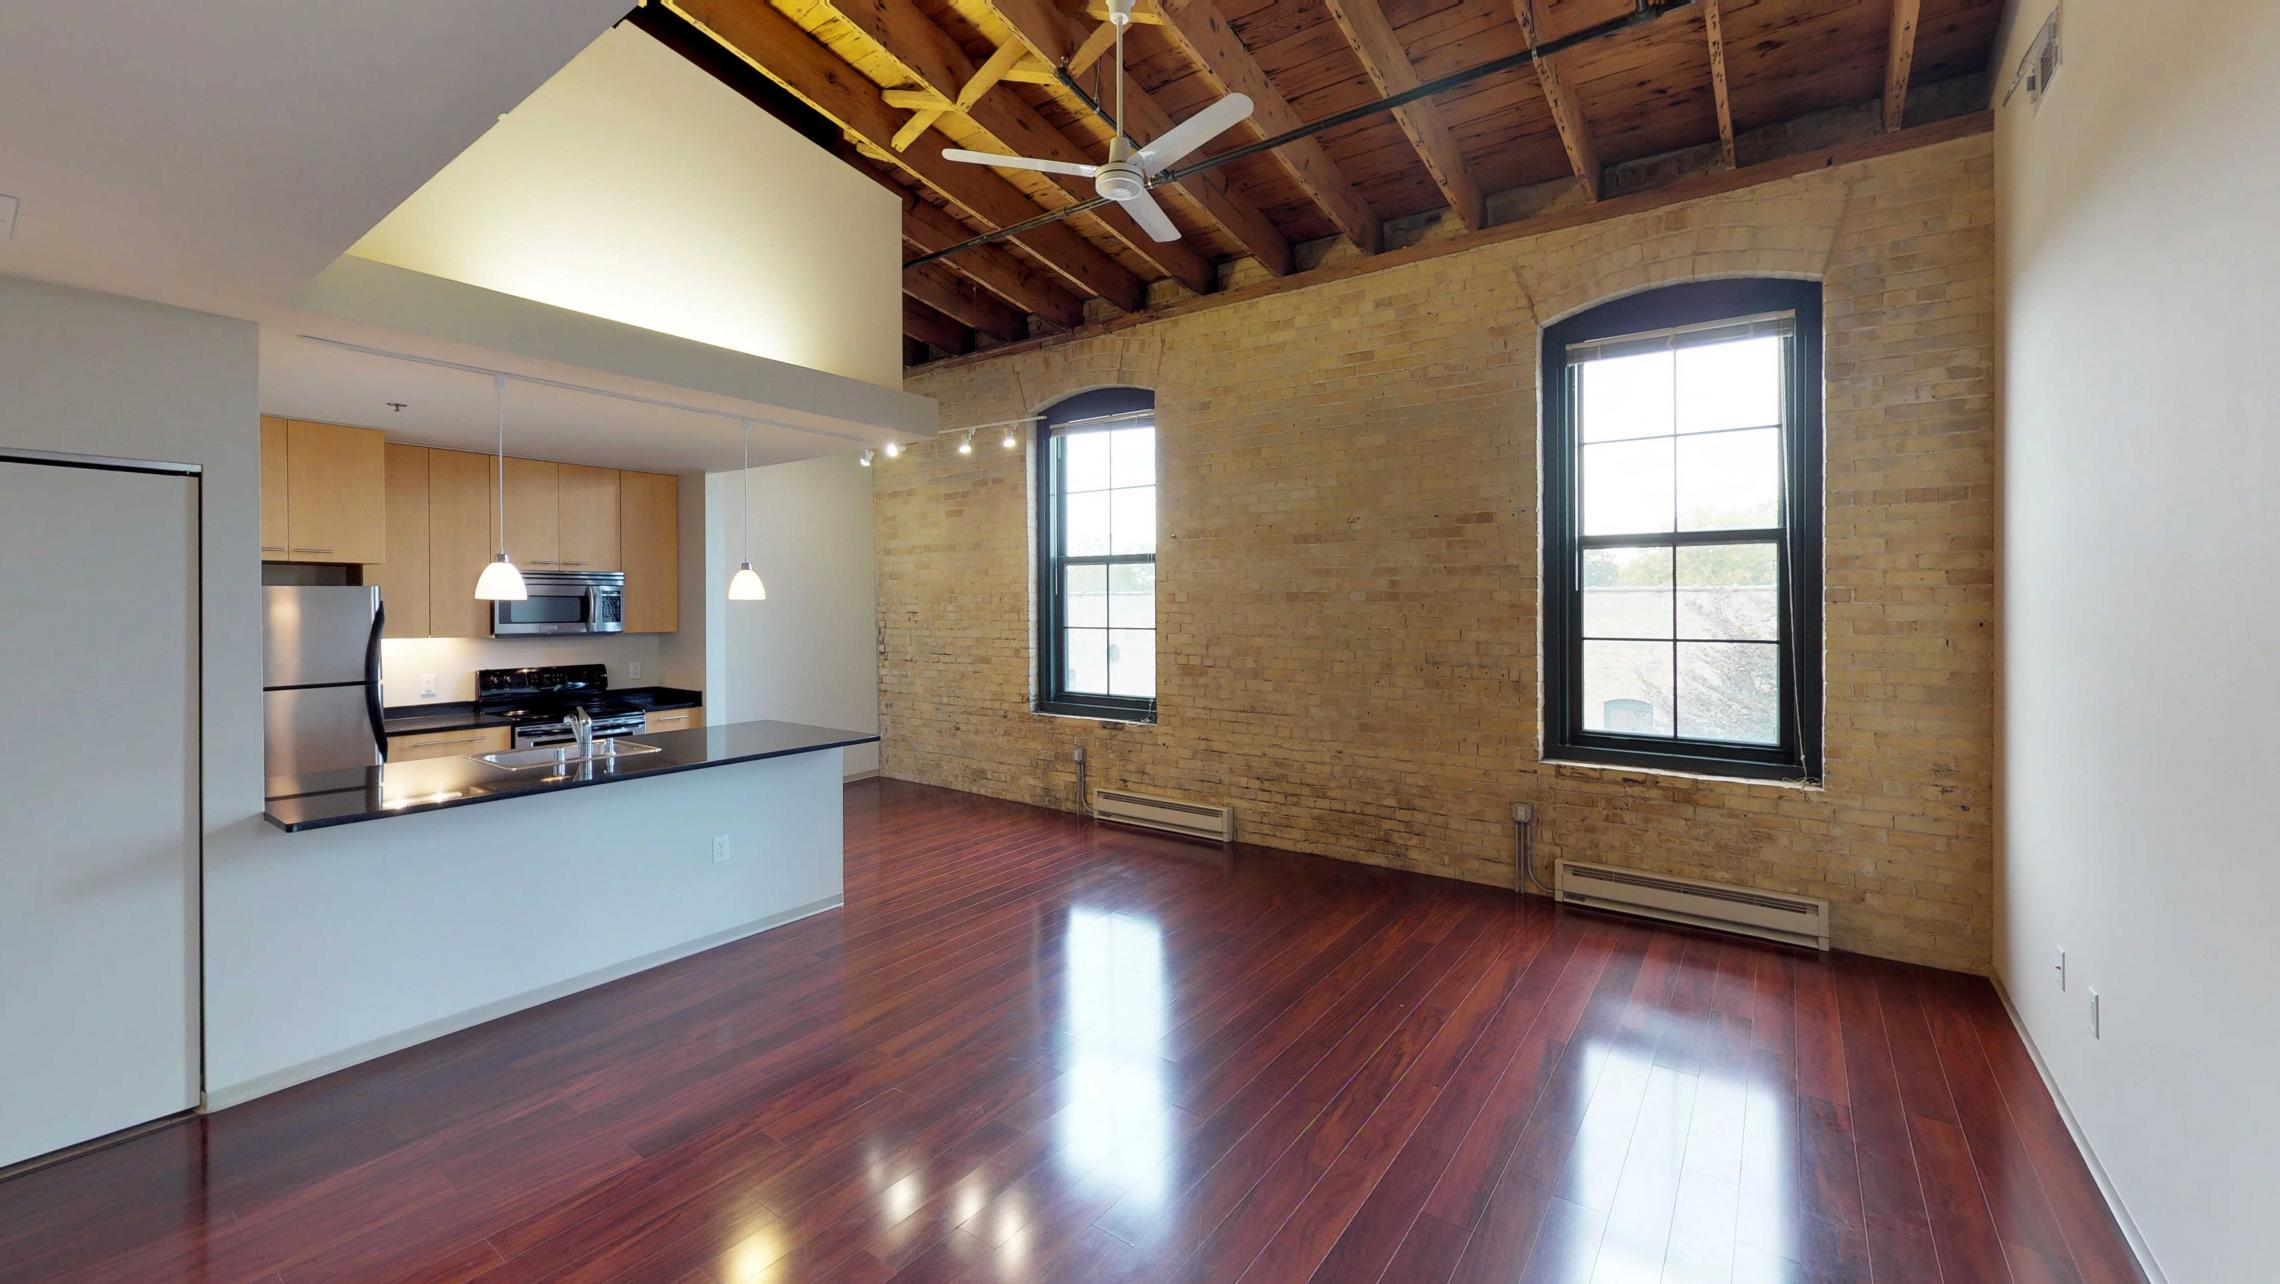 Tobacco-Lofts-Apartment-E312-Historic-Downtown-Two-Bedroom-Madison-Exposures-Brick-Vaulted-Ceiling-Yards.jpg